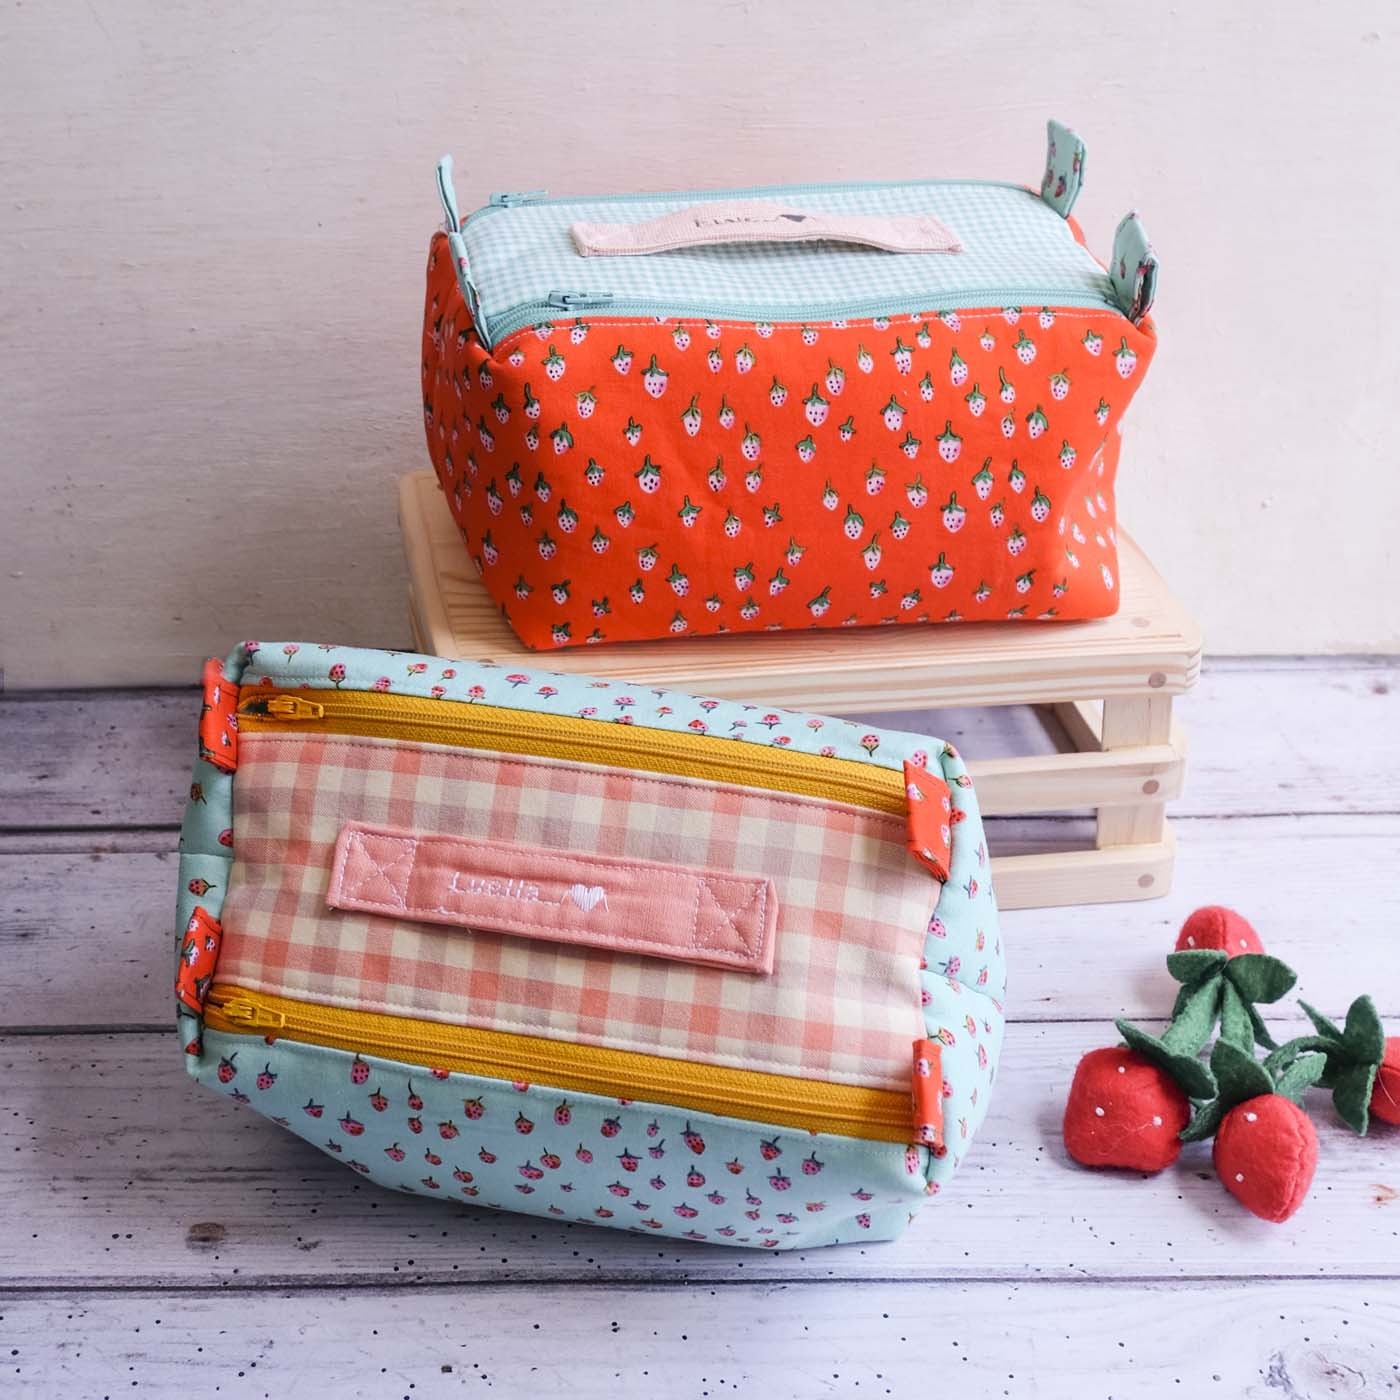 Caitlin's handsewn double zip pouches